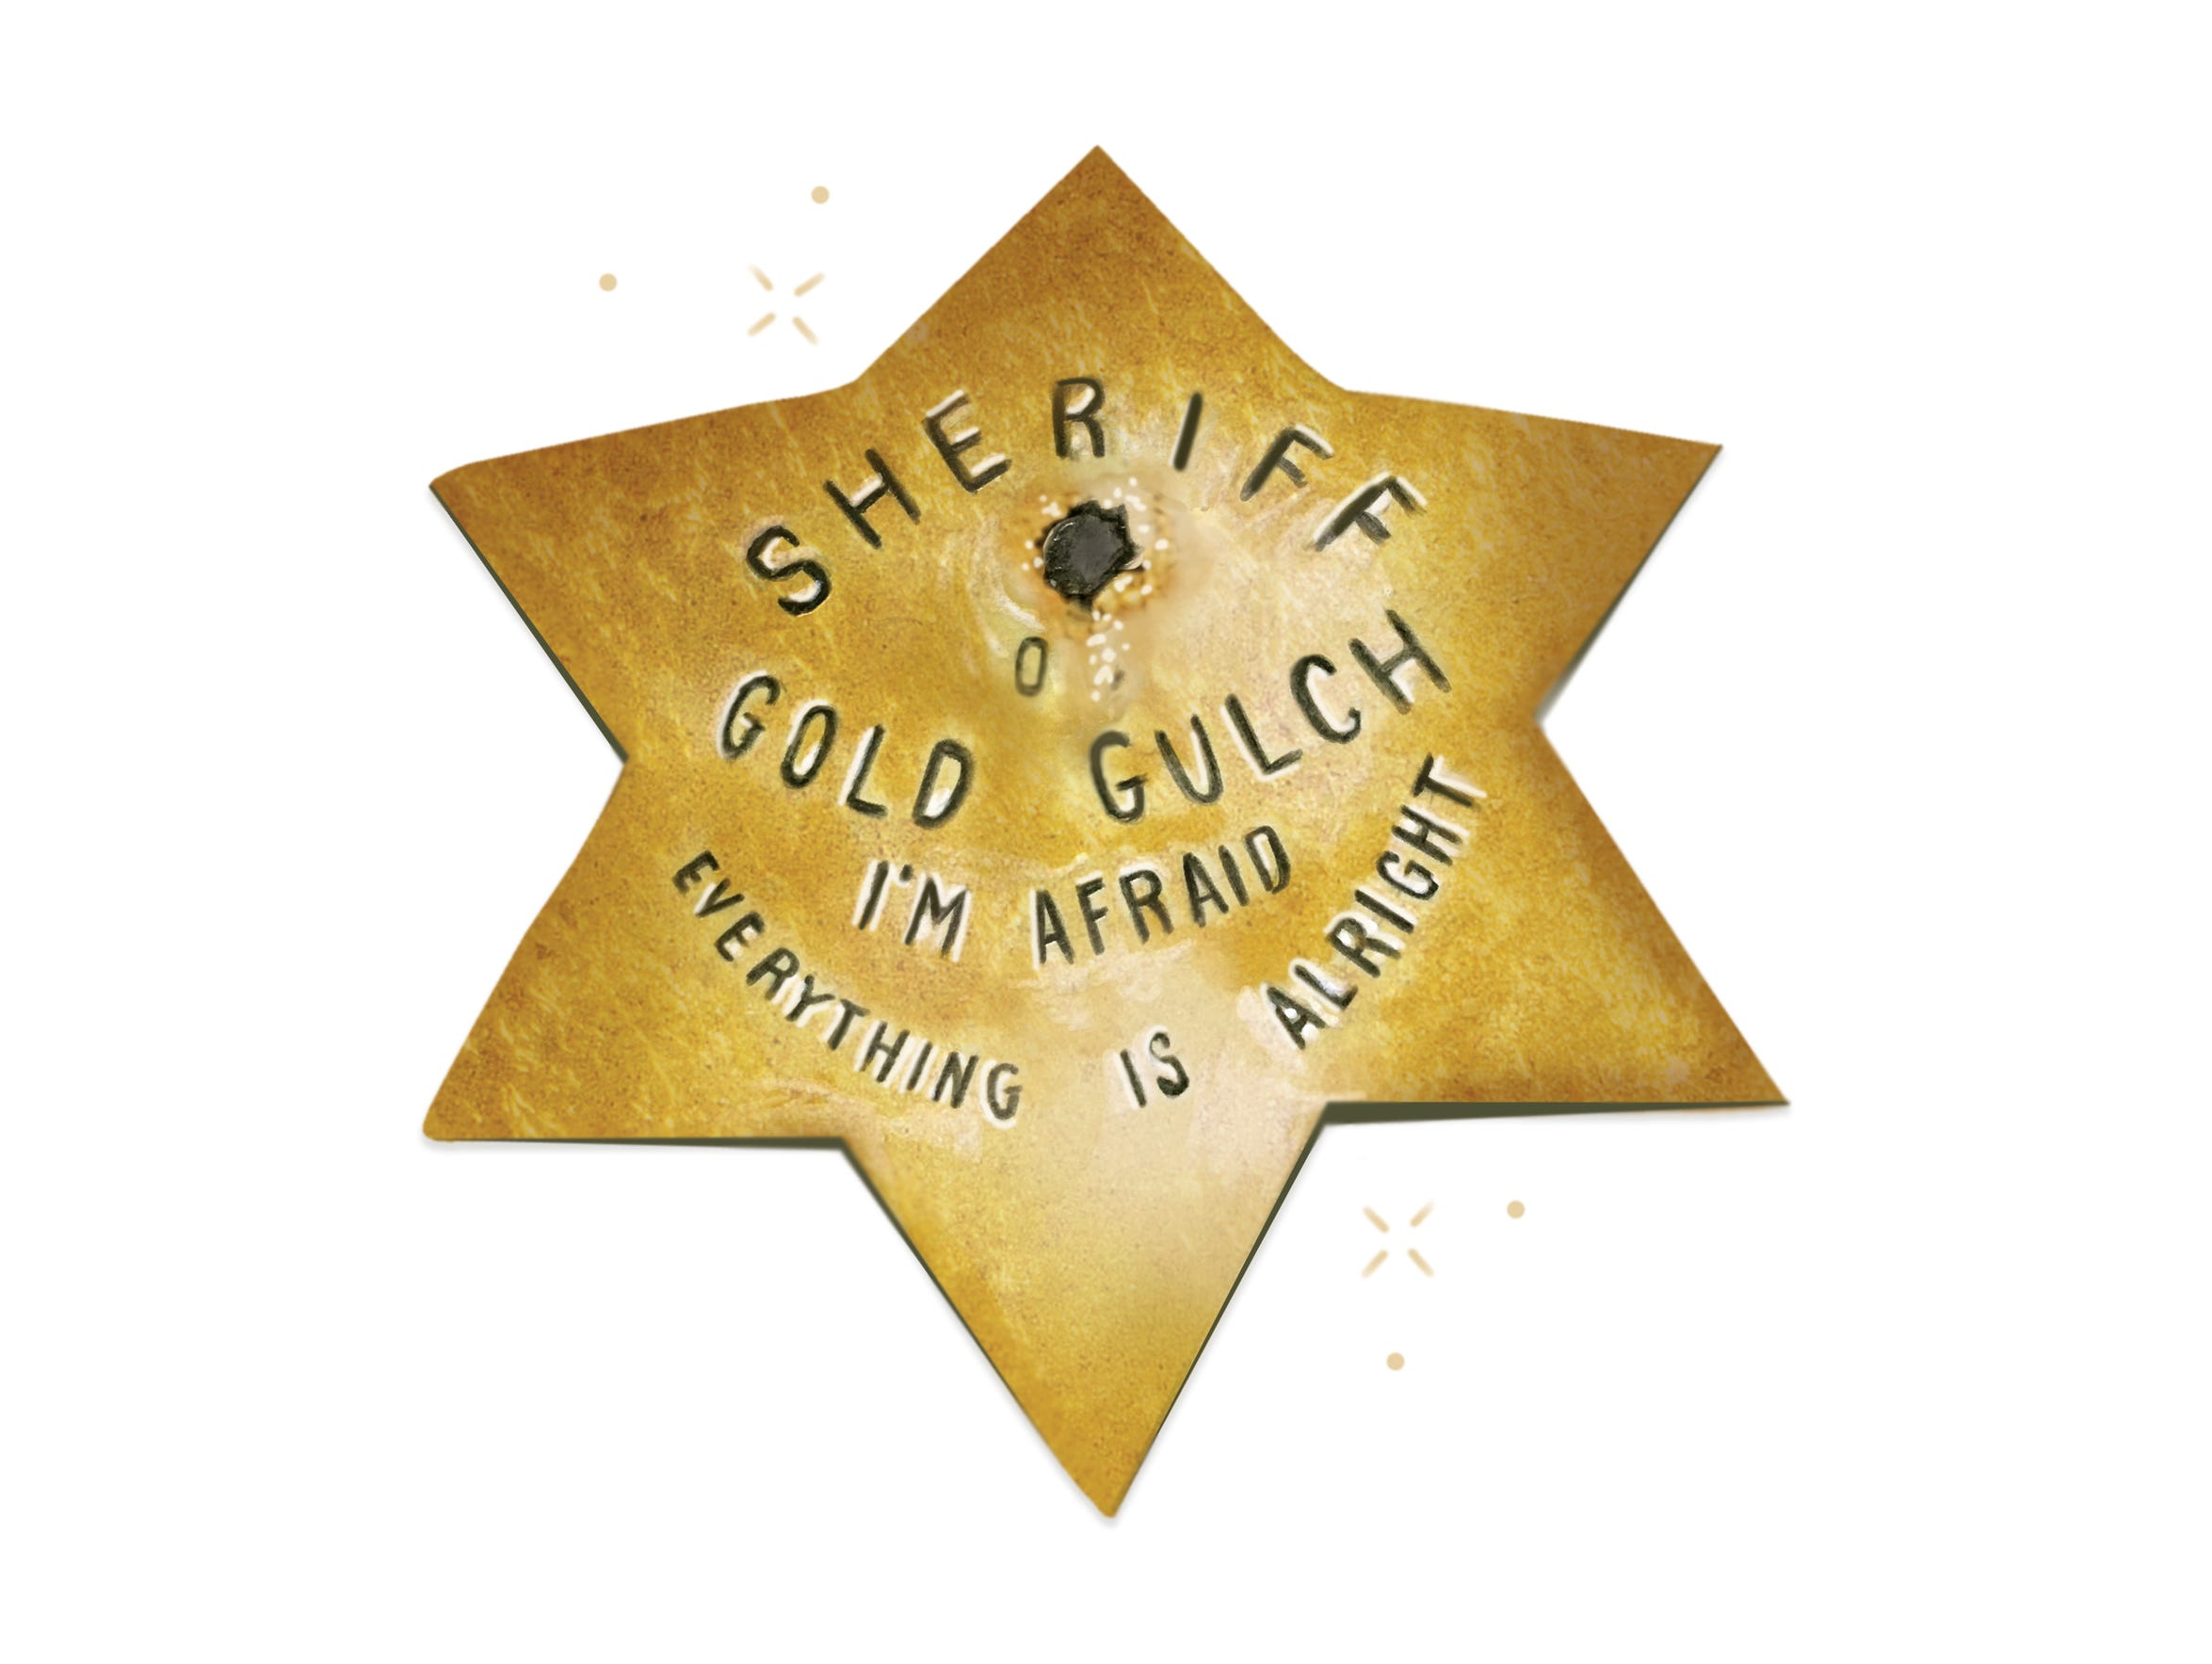 Harry Oliver's old sheriff's badge from Gold Gulch,